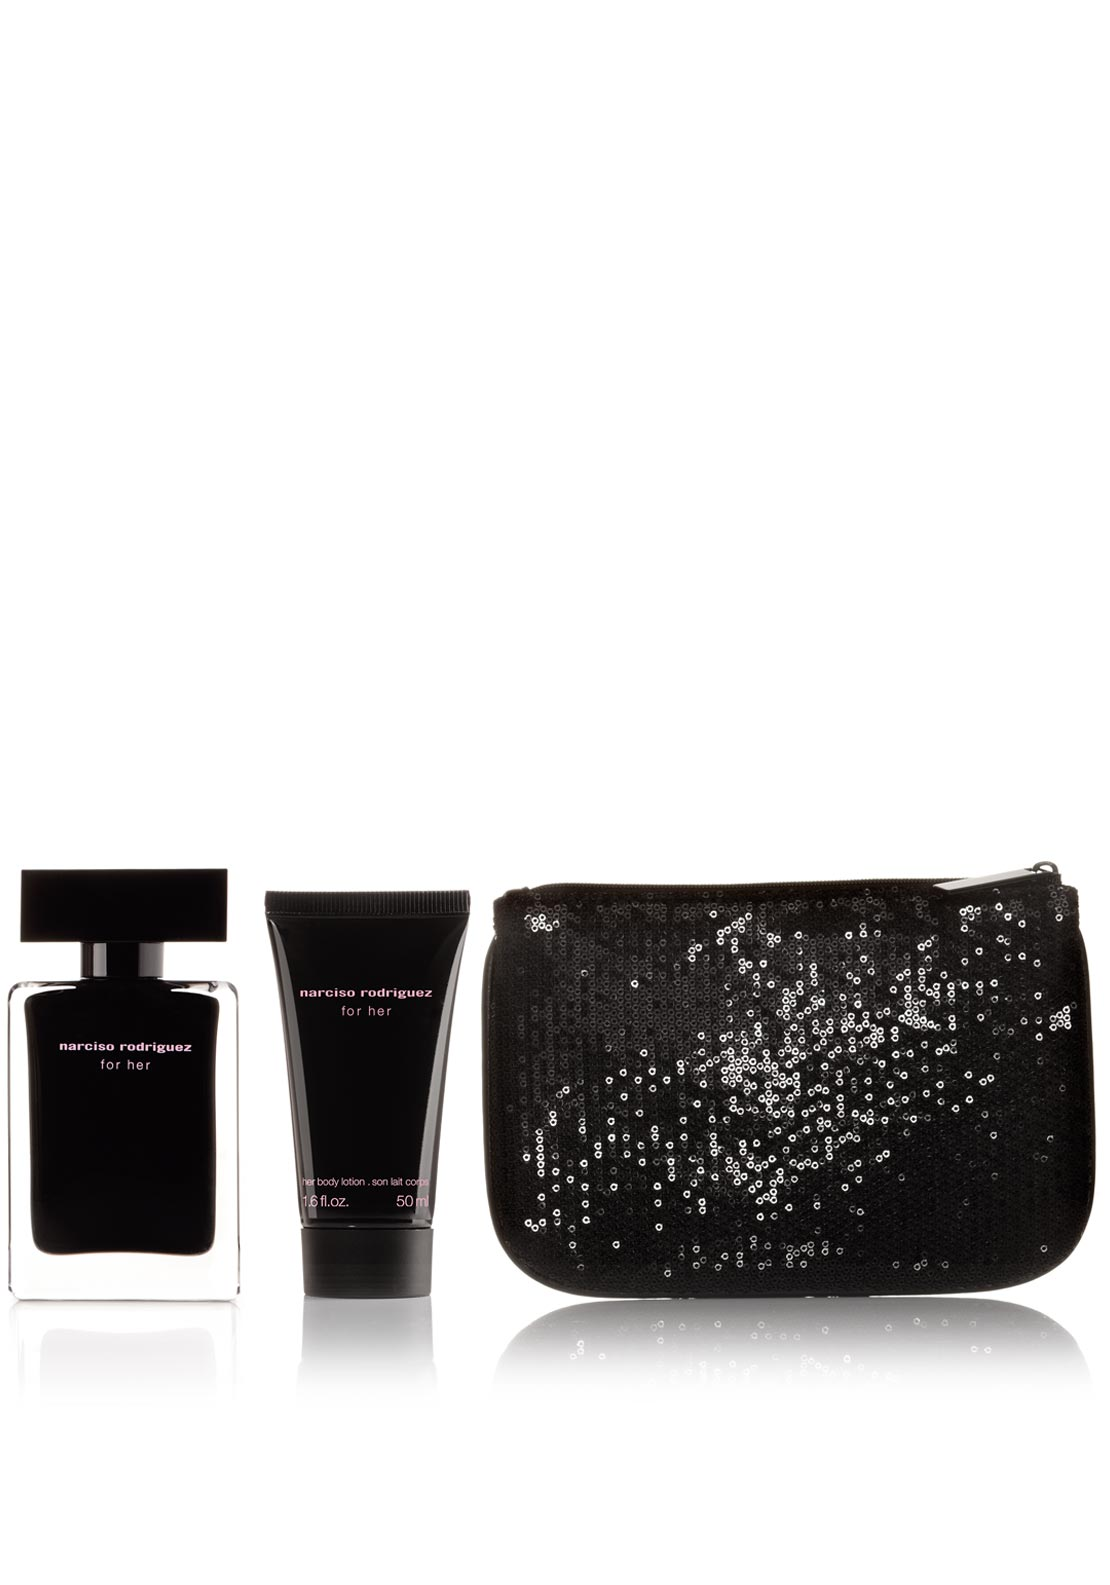 Narciso Rodriguez Eau De Toilette Gift Set for Her, 50ml